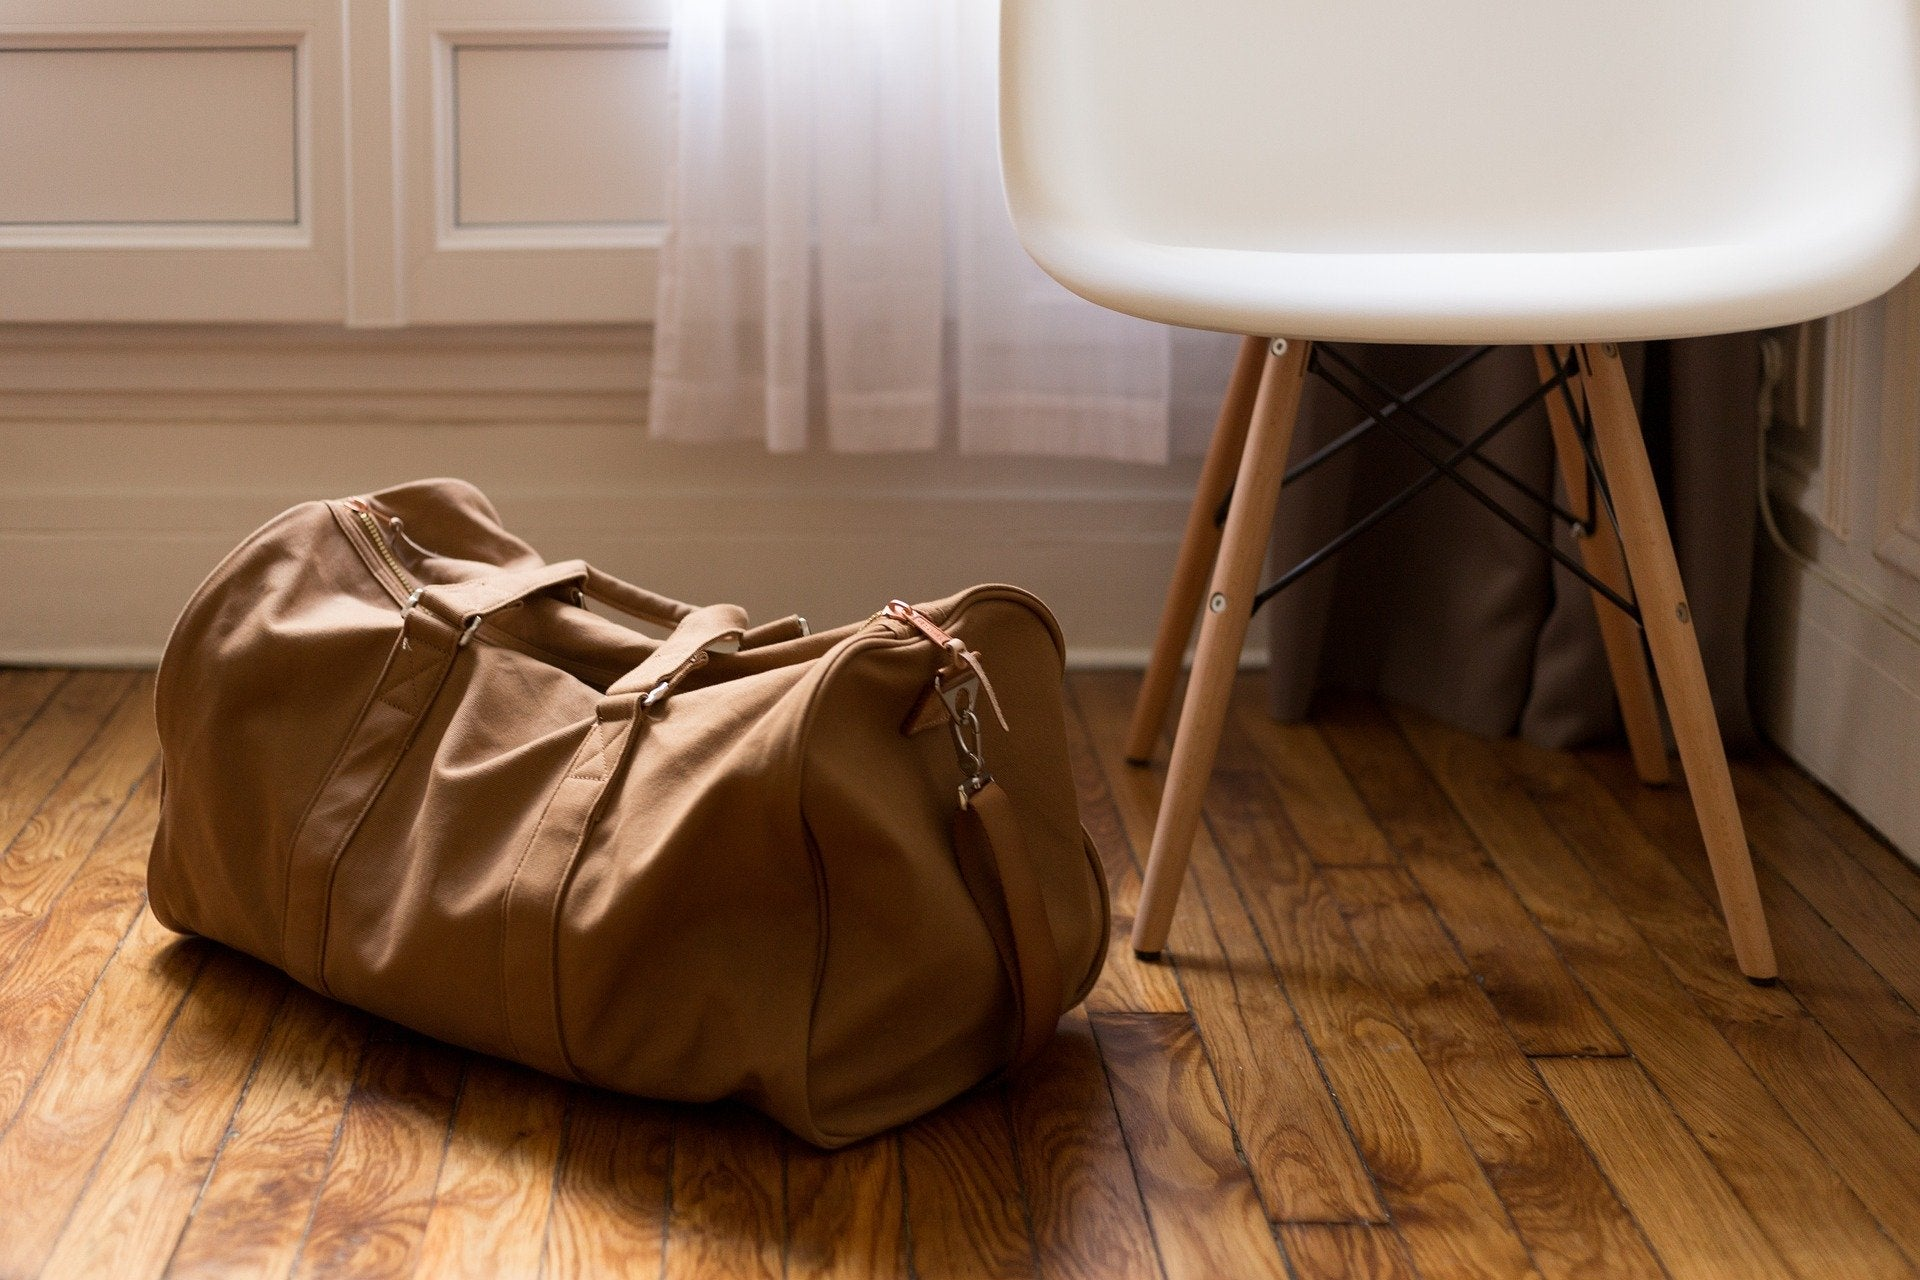 Buyers Guide: Finding Canvas Duffle Bags